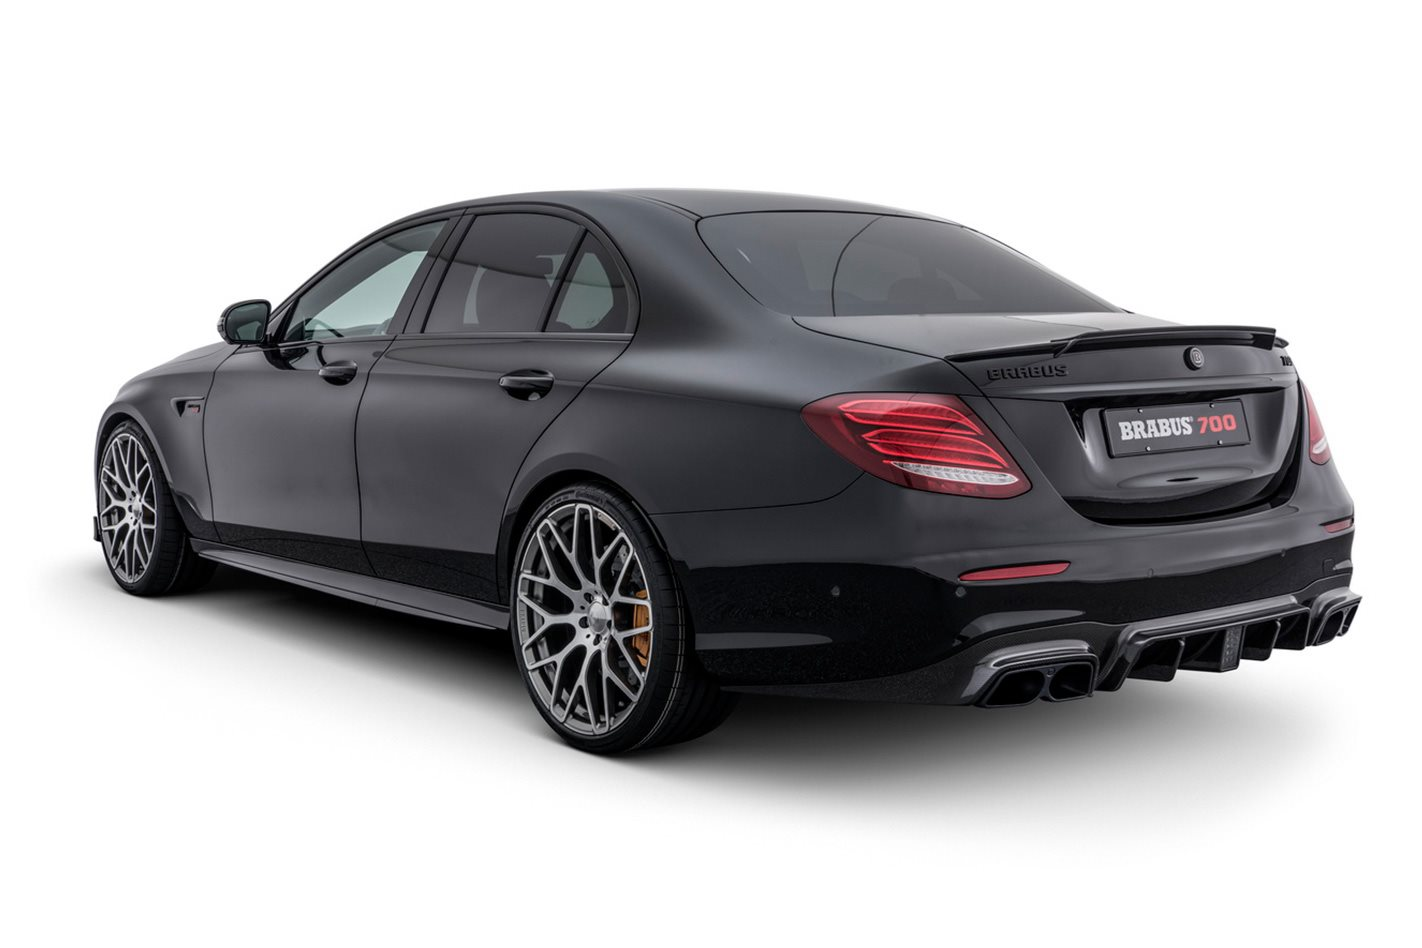 Mercedes-AMG-E63-based-Brabus-700-rear.jpg